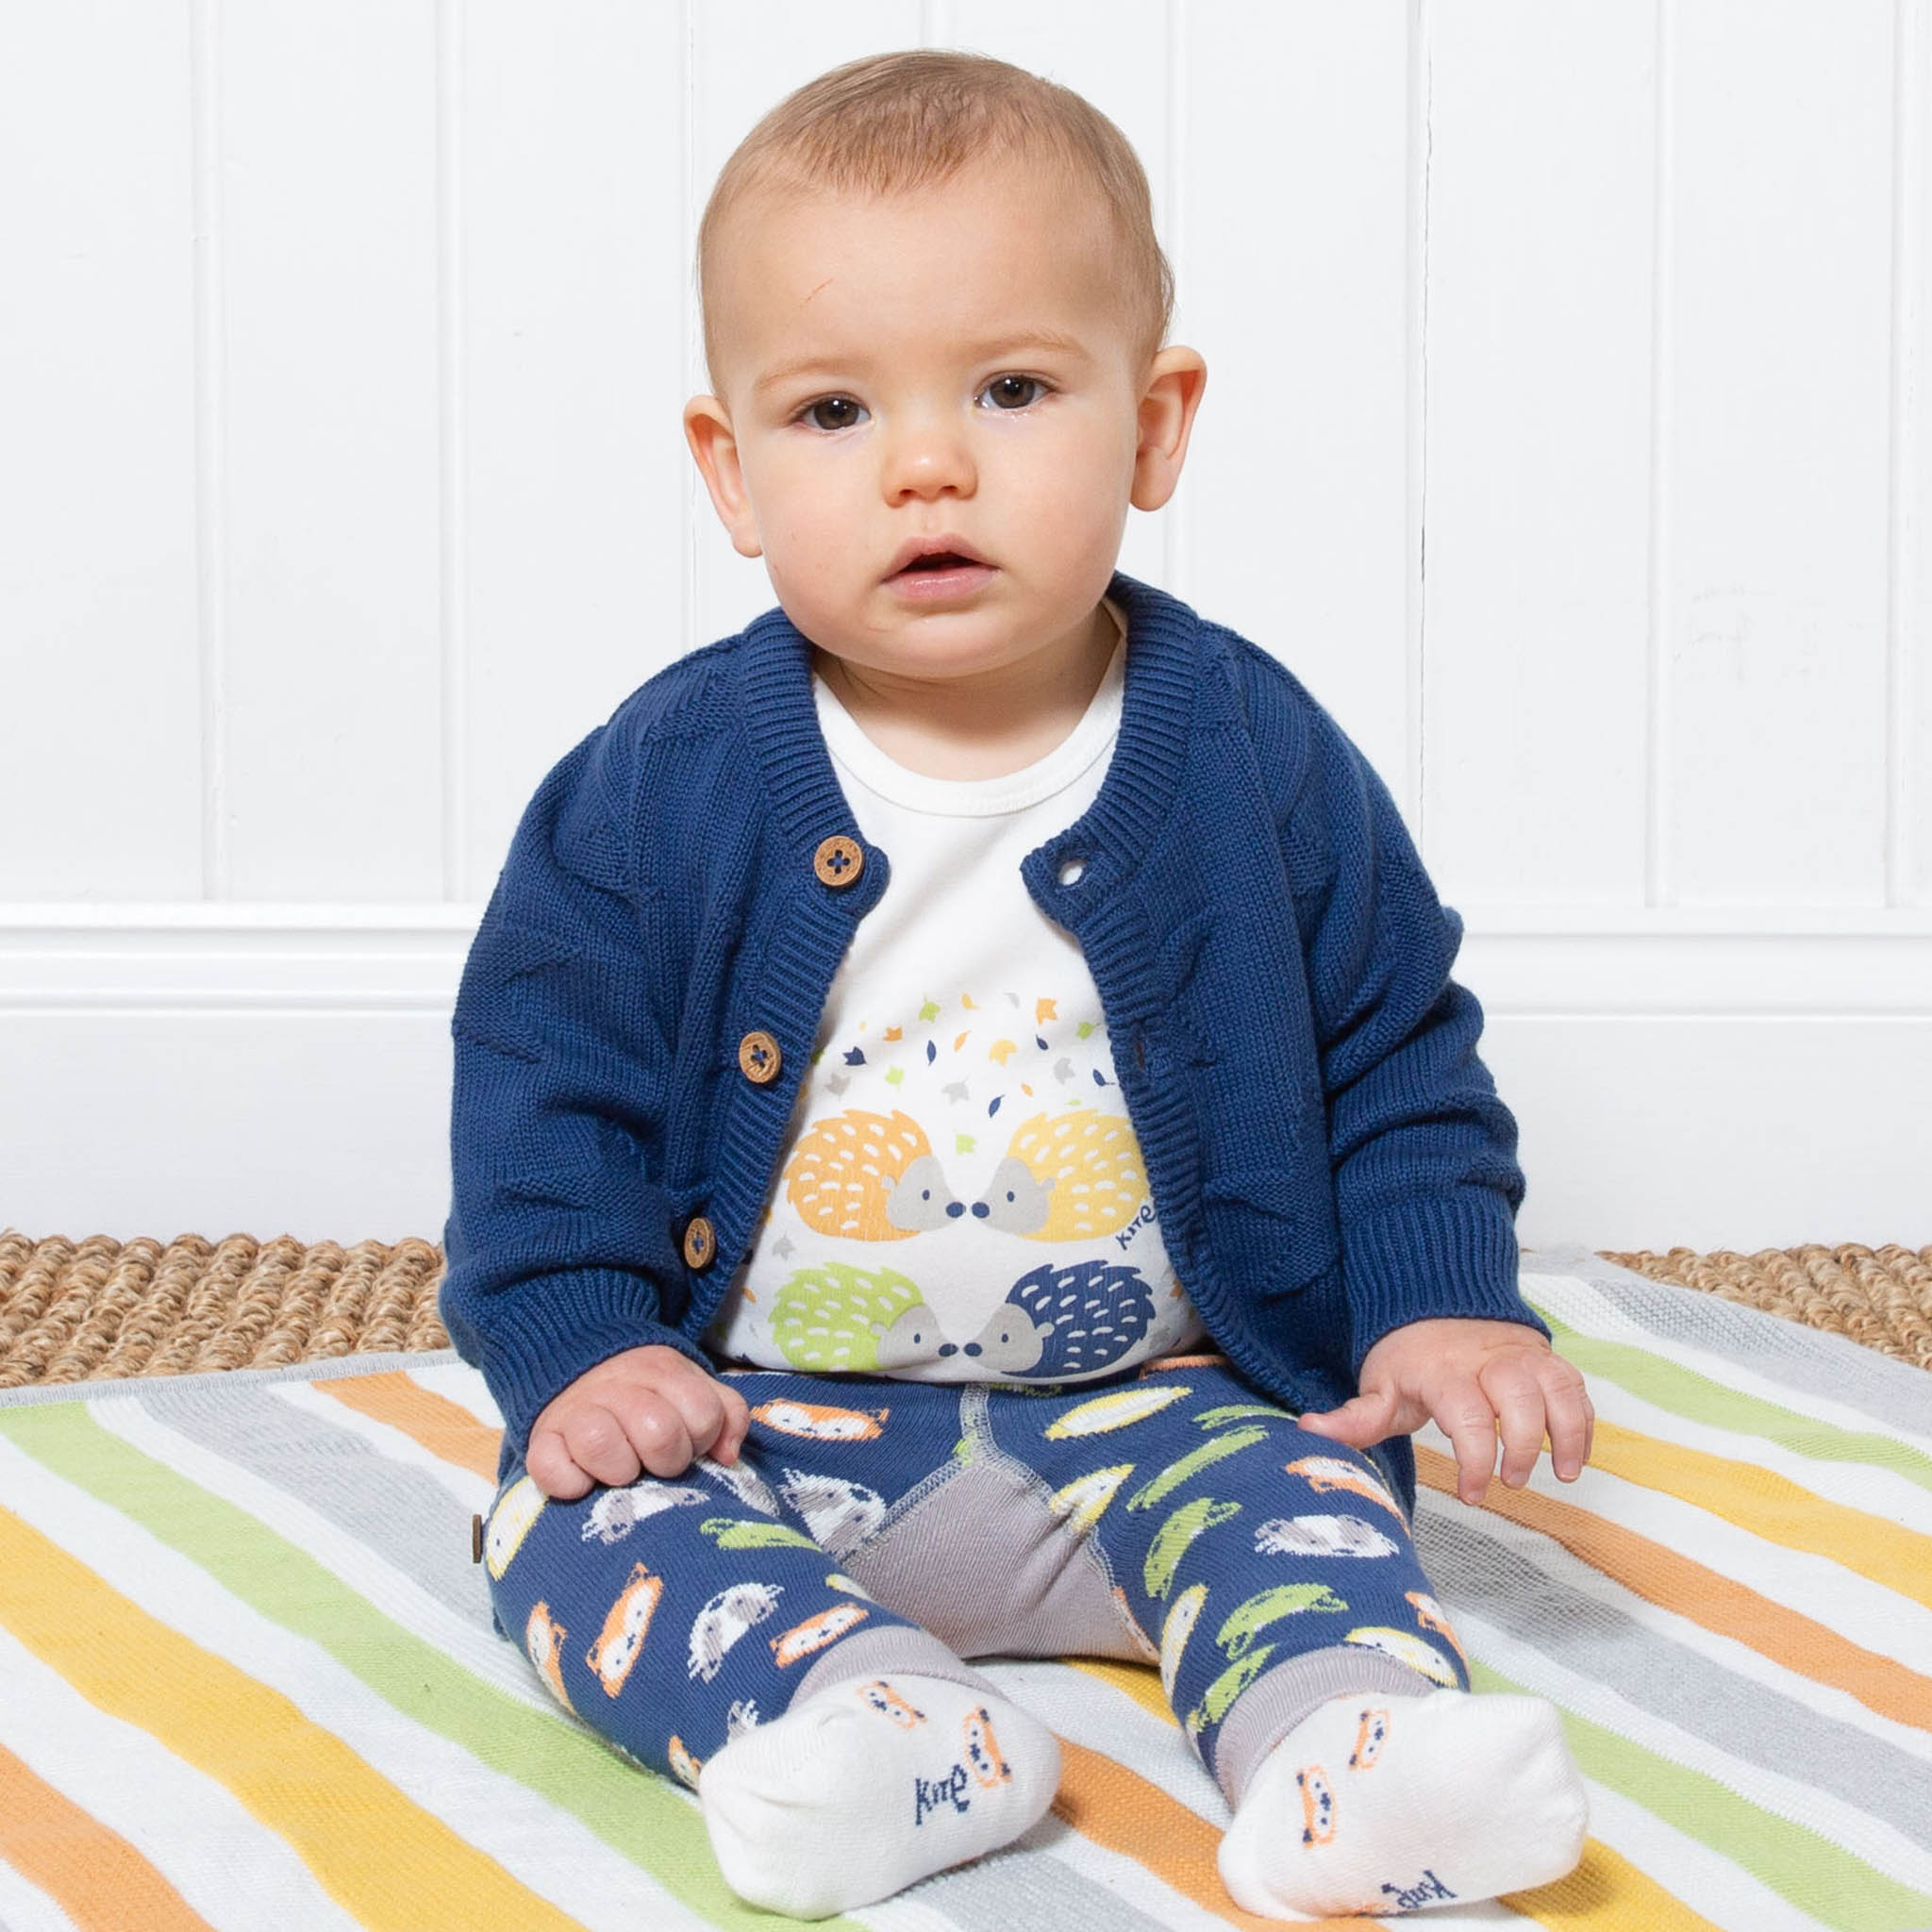 SALE £23.20 Kite 'My First Cardi' - Navy (was £29.00)